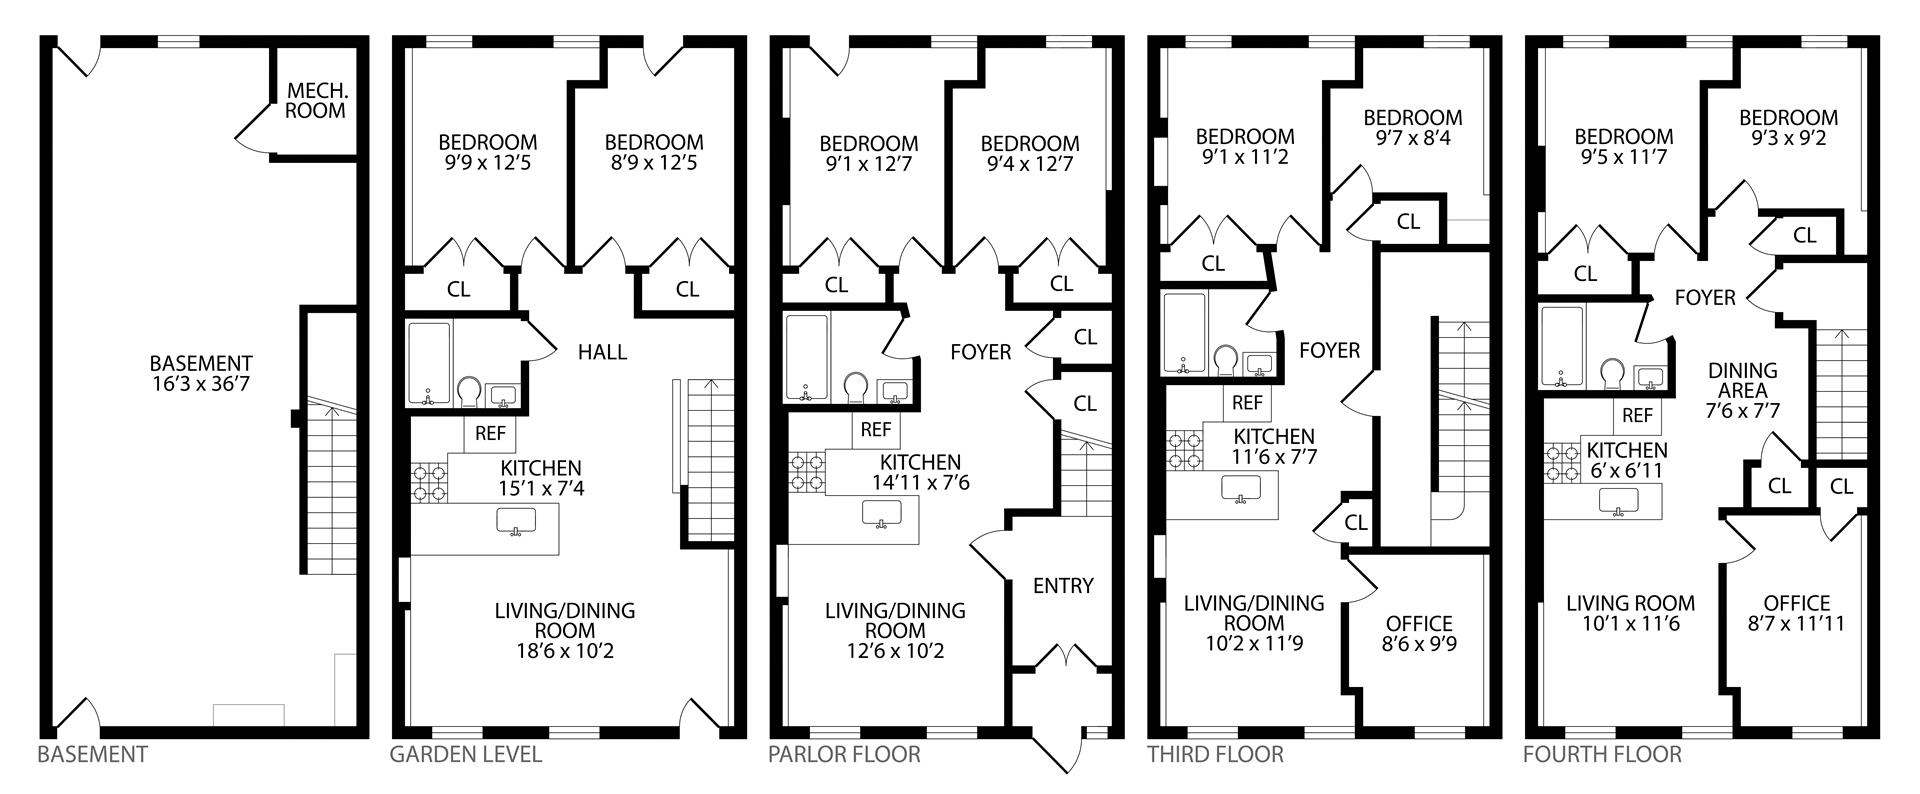 Floor plan of 829 Putnam Avenue - Bedford - Stuyvesant, New York